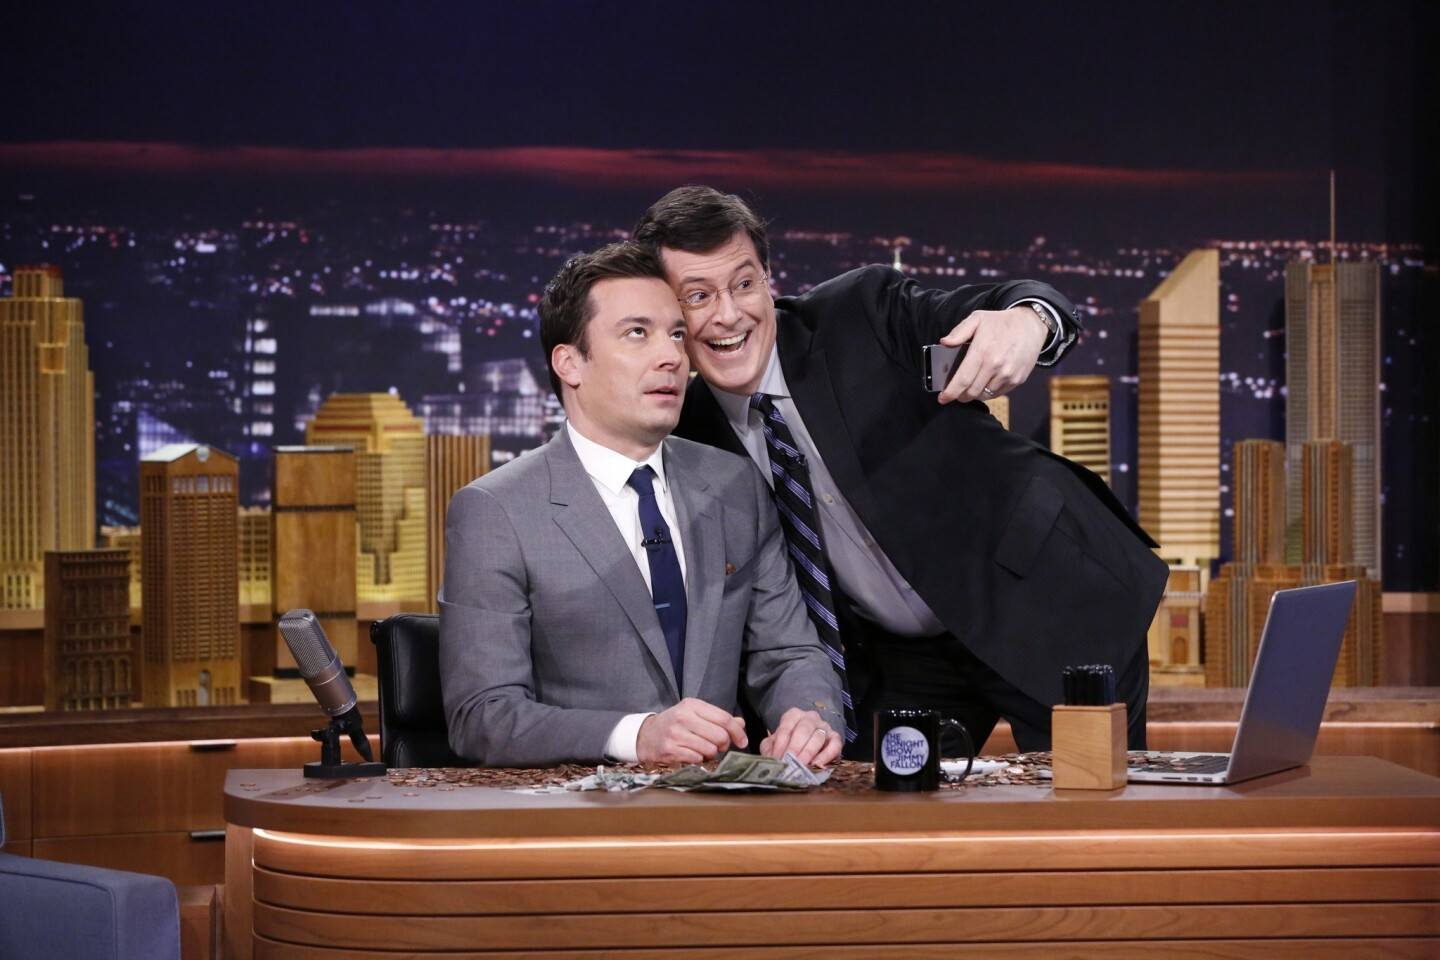 """Fellow talk show host Stephen Colbert shamelessly takes a selfie with Jimmy Fallon, who rolled out his first show as host of NBC's """"The Tonight Show."""" The program was previously hosted by Jay Leno."""